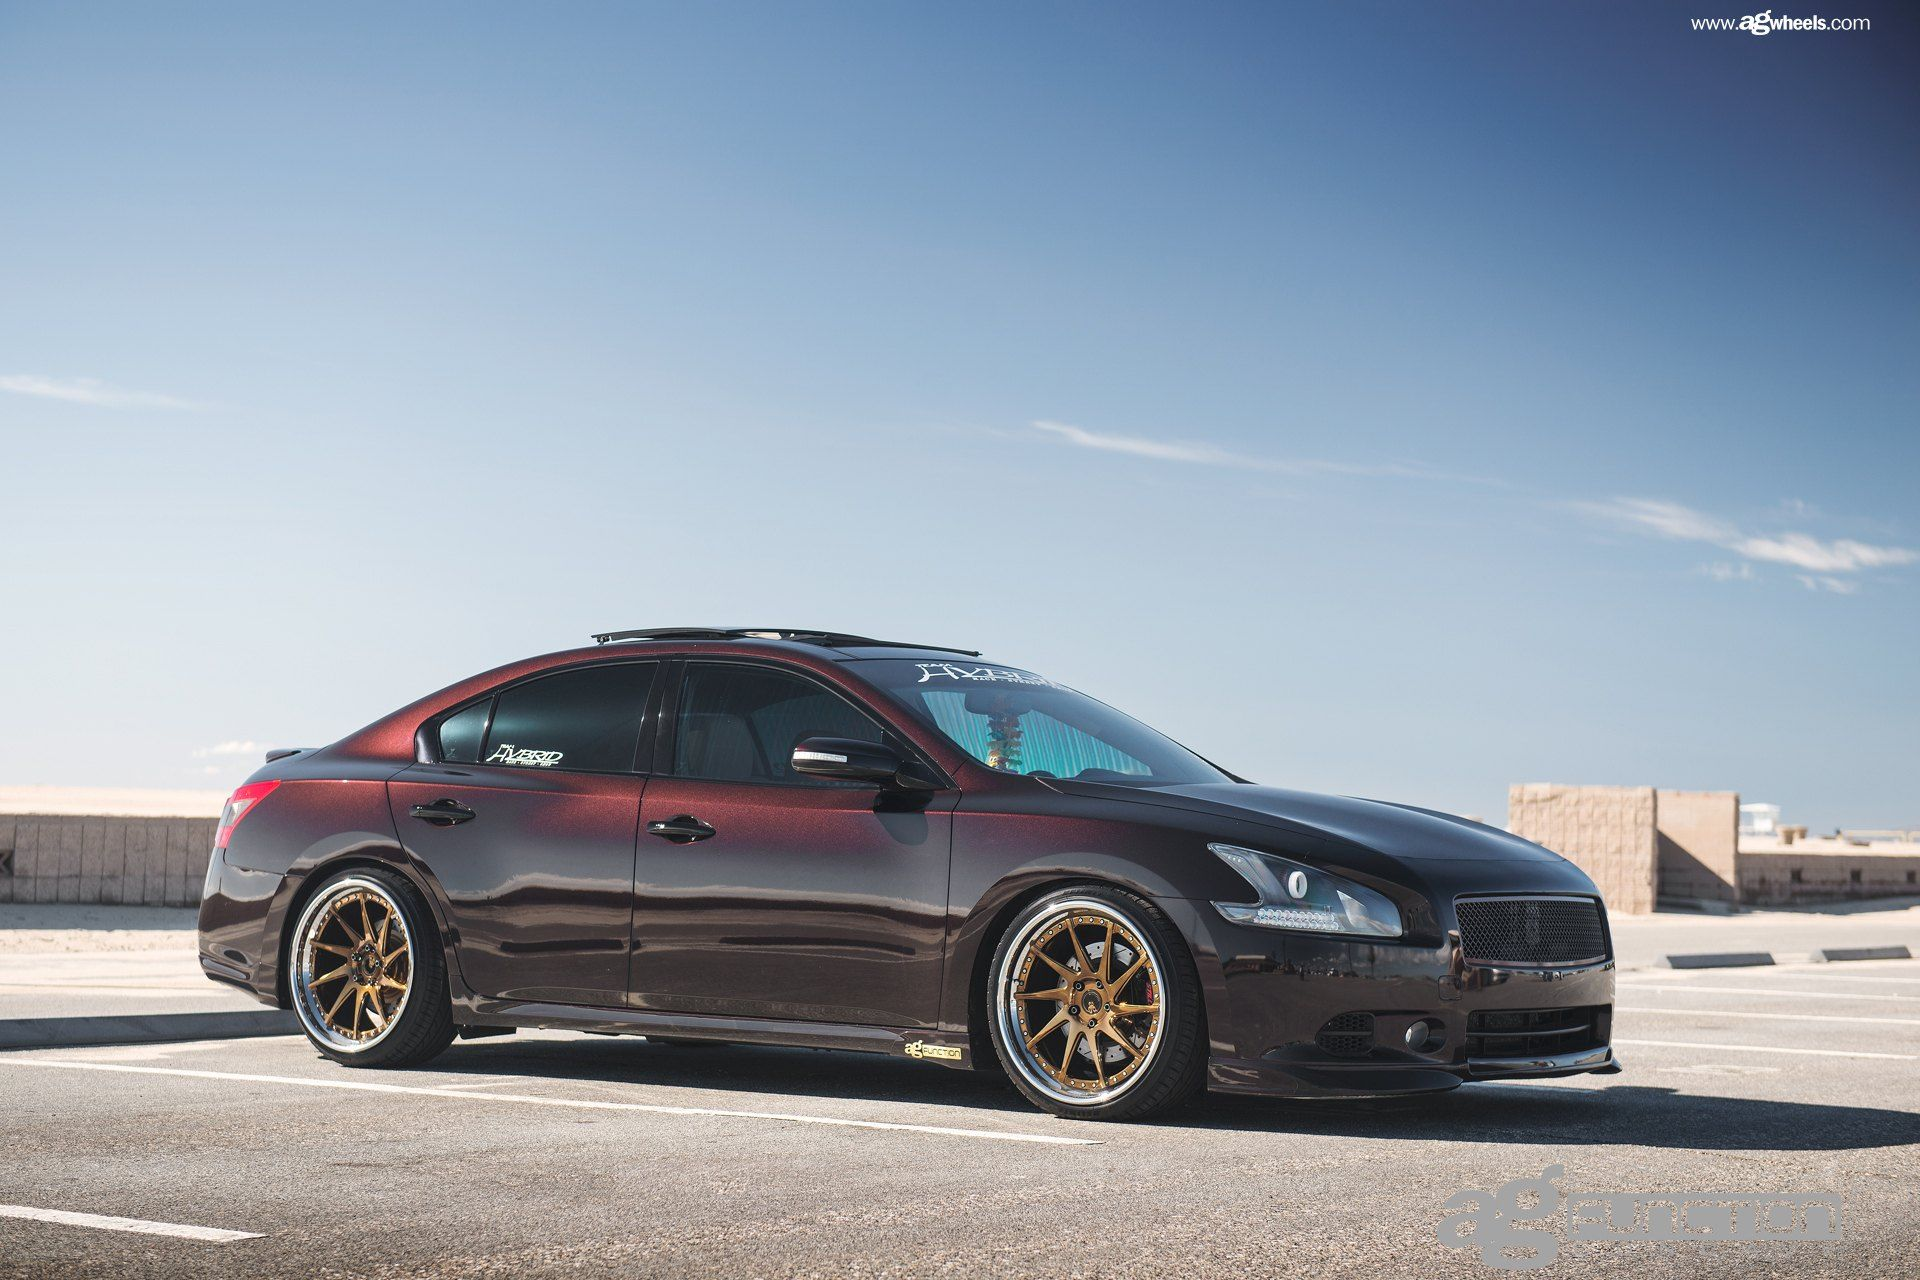 Nissam Maxima With A Clean Stance By Avant Garde Nissan Maxima Maxima Nissan